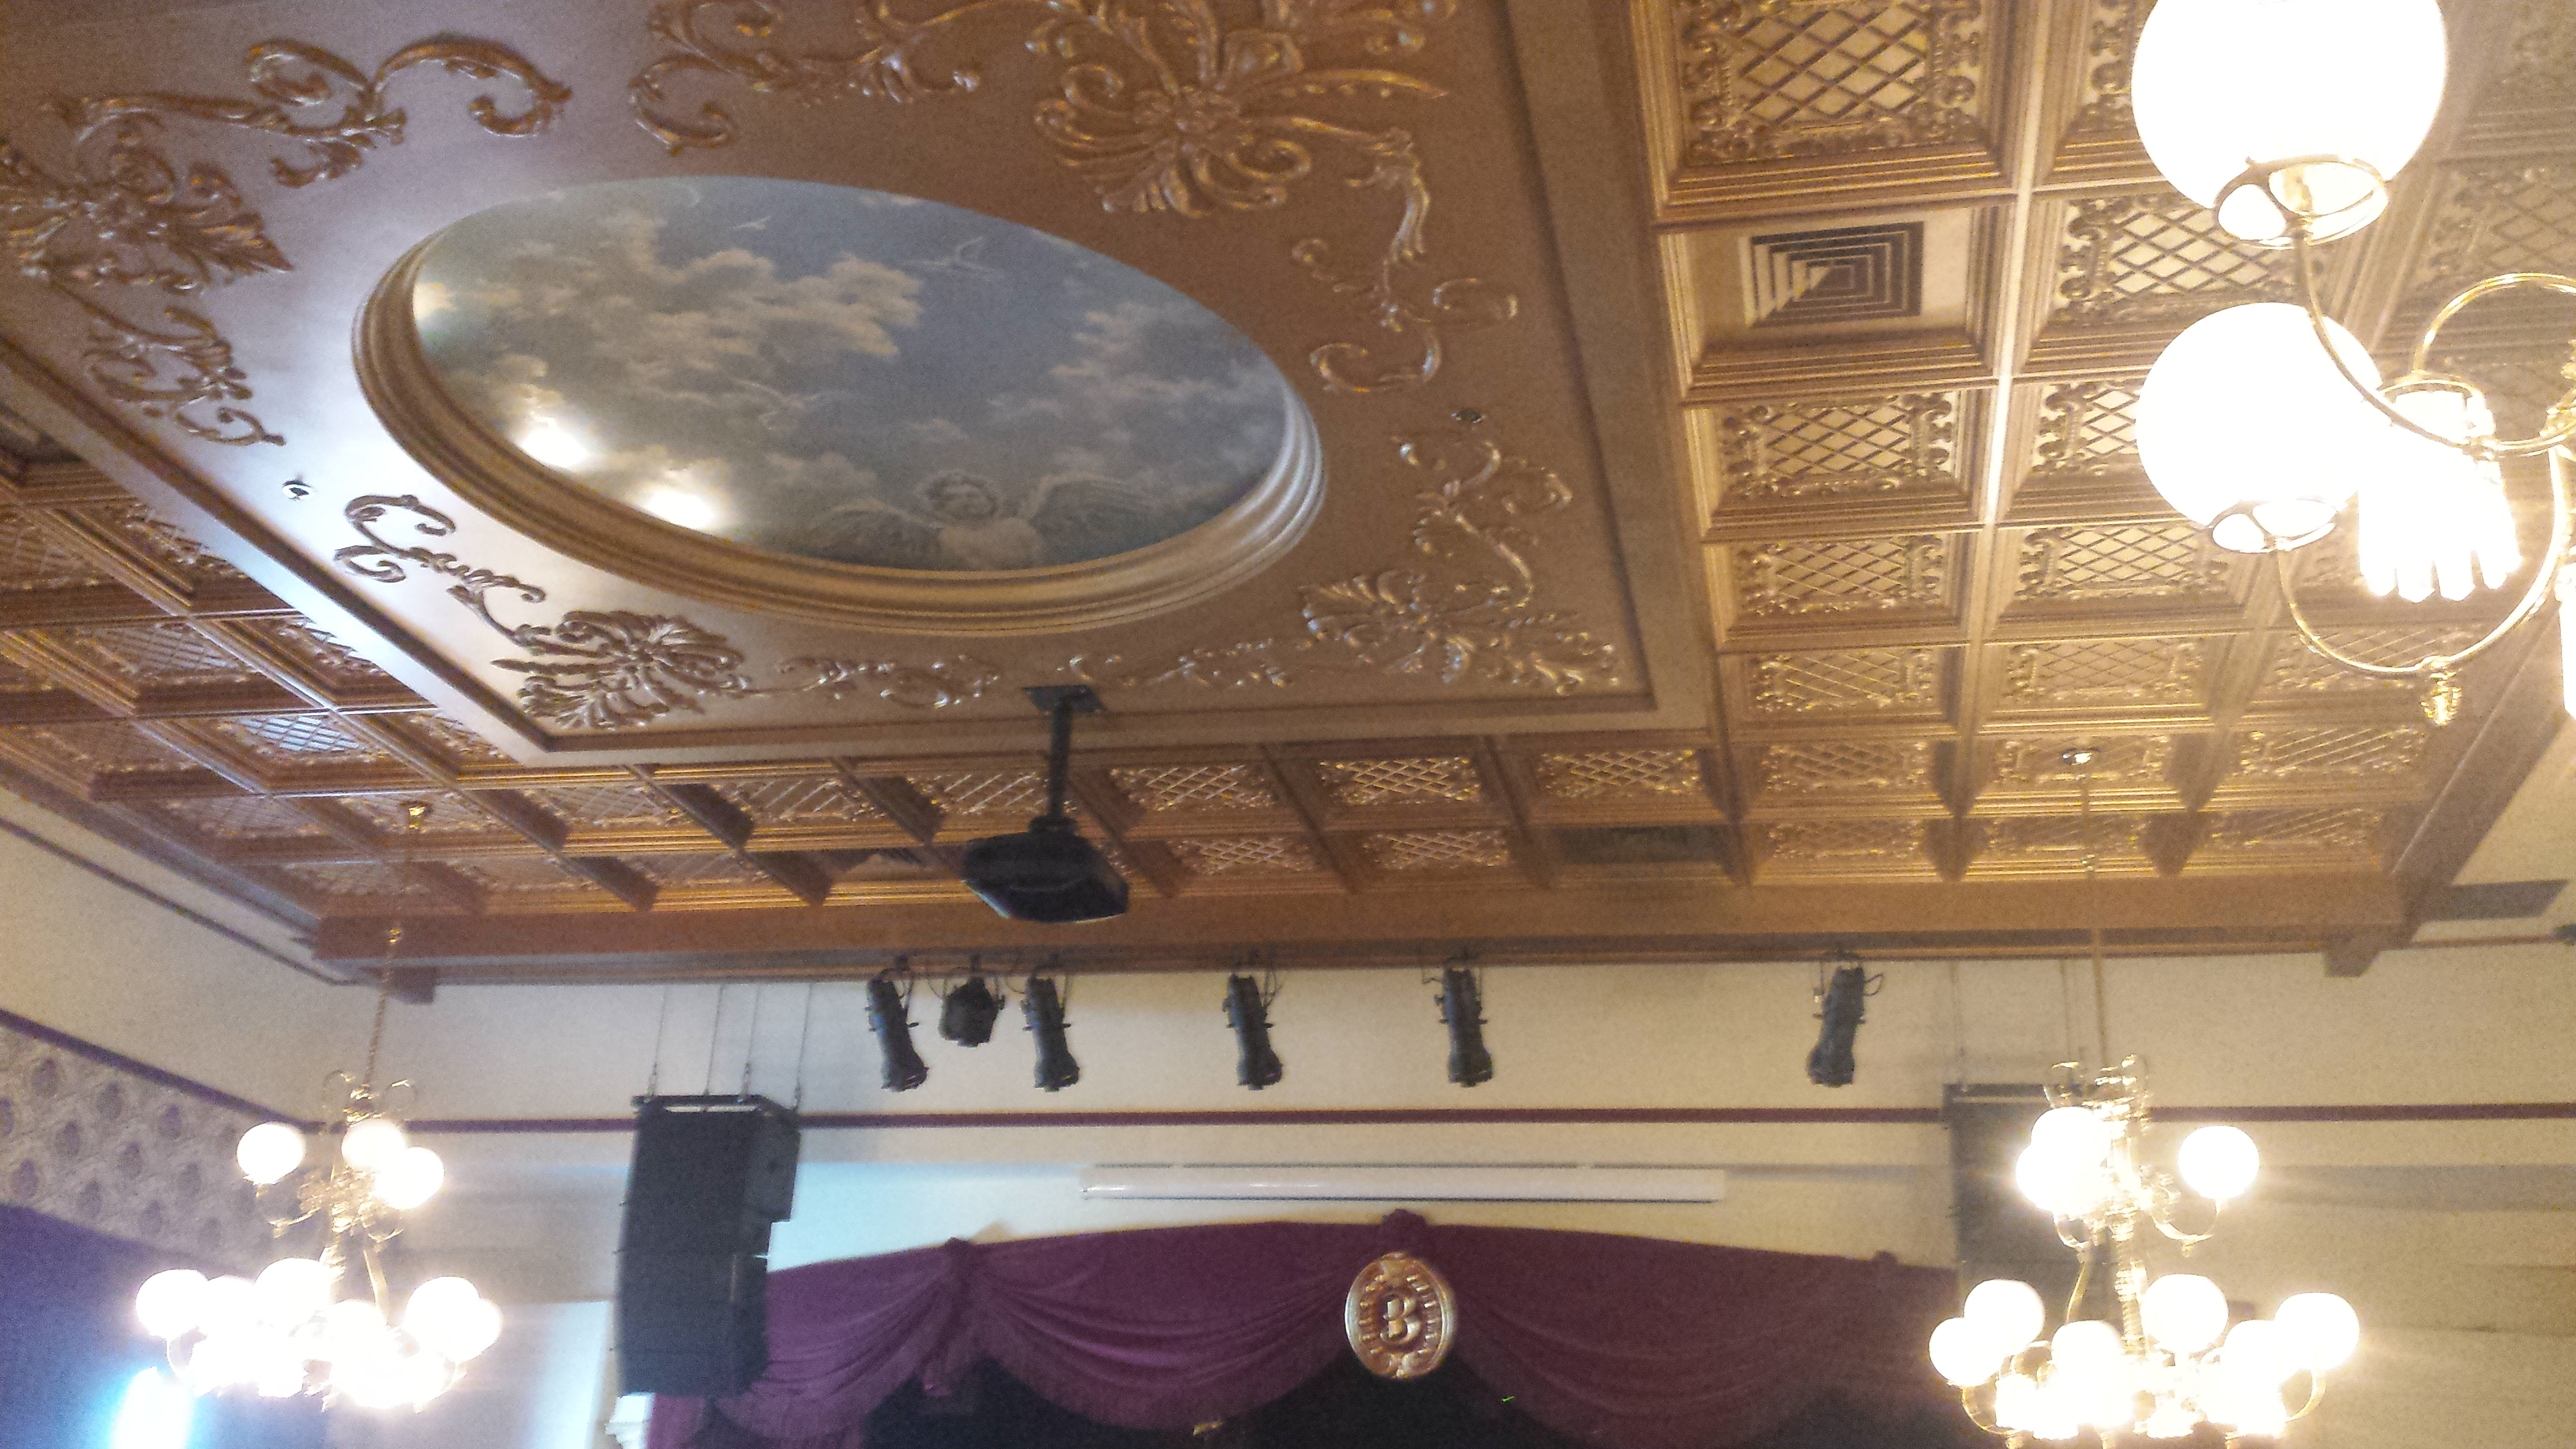 https://d3n8a8pro7vhmx.cloudfront.net/cchs/pages/12/attachments/original/1494792880/Beermann's_Grand_Ballroom_Ceiling.jpg?1494792880